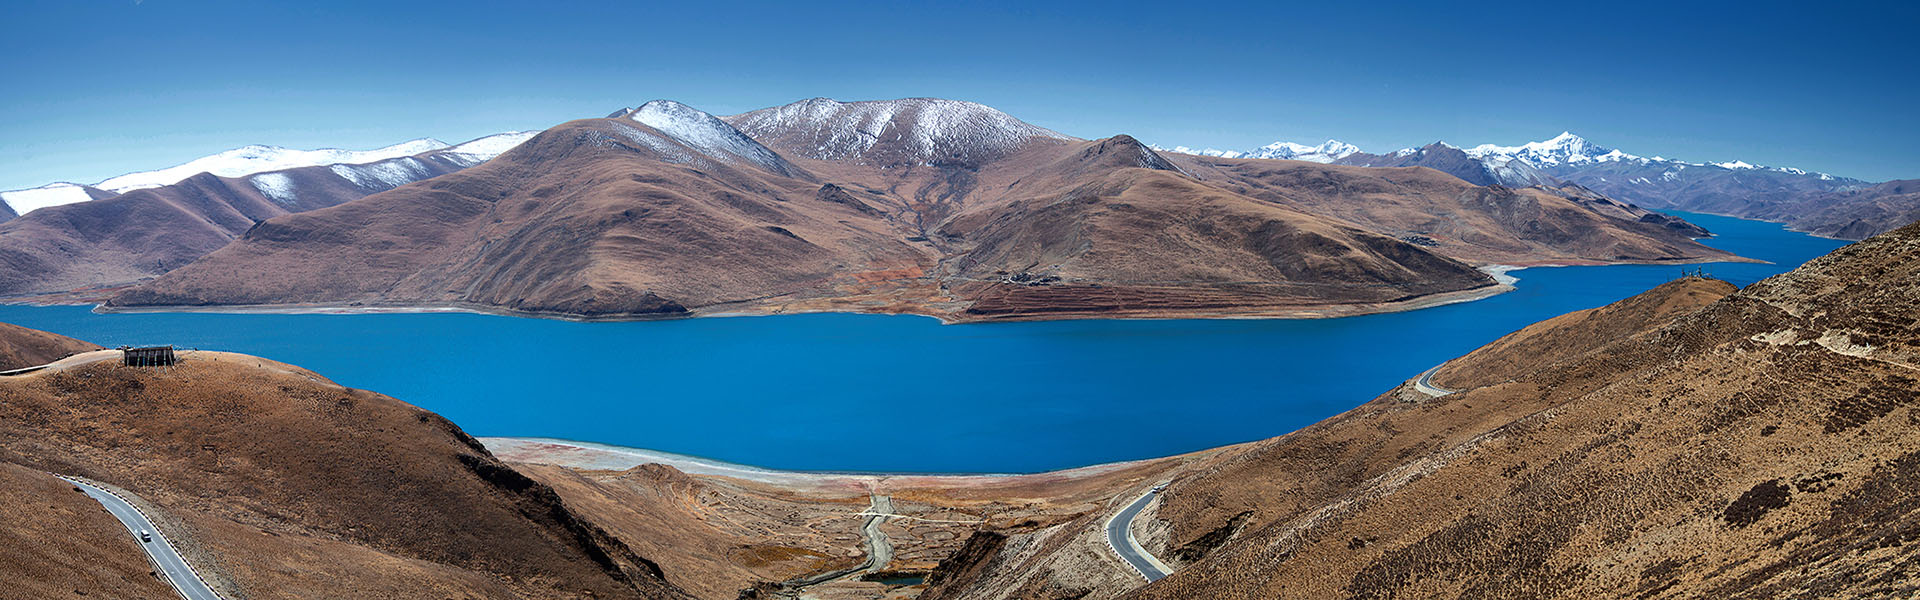 Explore the nature wonders that Tibet offers to you